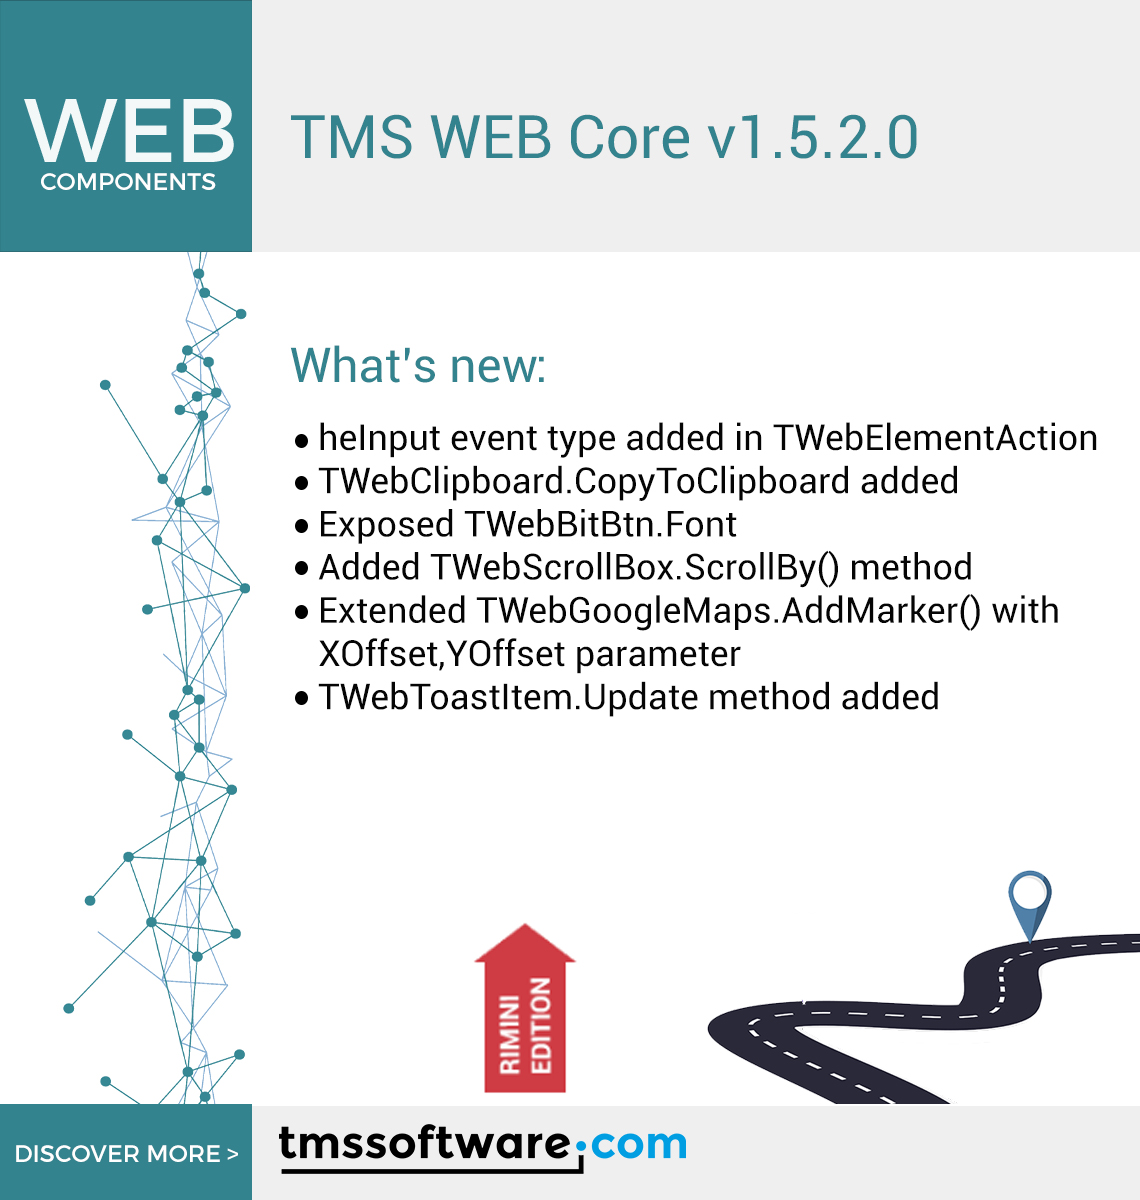 TMS WEB Core v1.5.2.0 has been released! Free download now available for registered users! Discover more: https://t.co/CQBJ6UviZQ  #DELPHI #Developer #RELEASE https://t.co/7rGgukPium